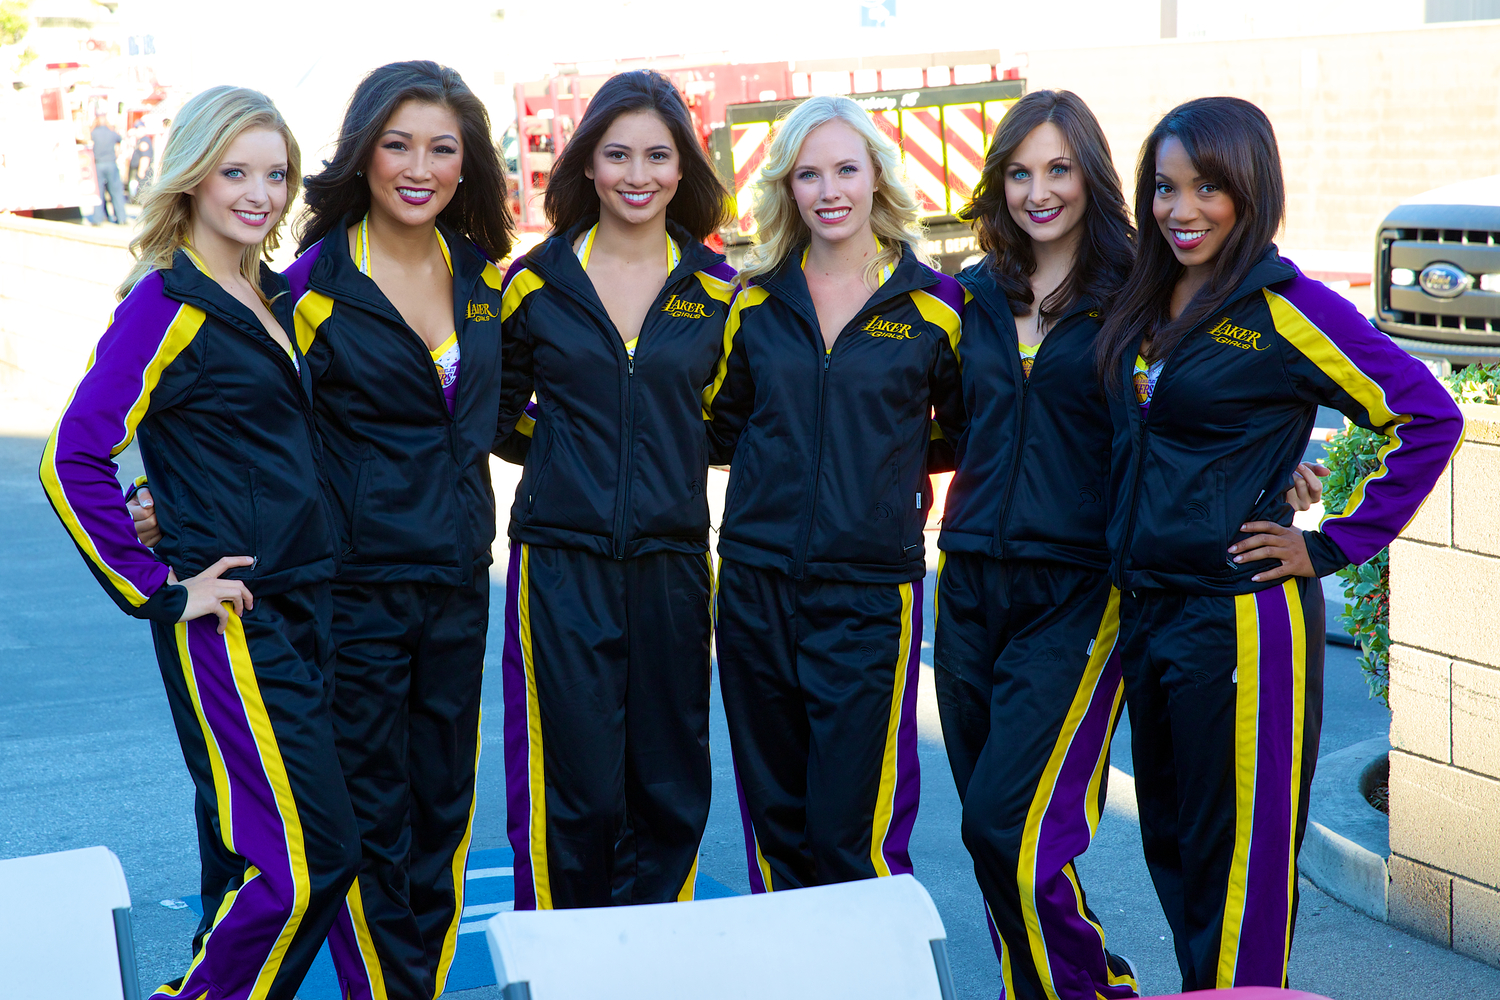 Laker Girls at our National Night Out event.  (click on photo for full resolution). Photo by Erick Chavez.